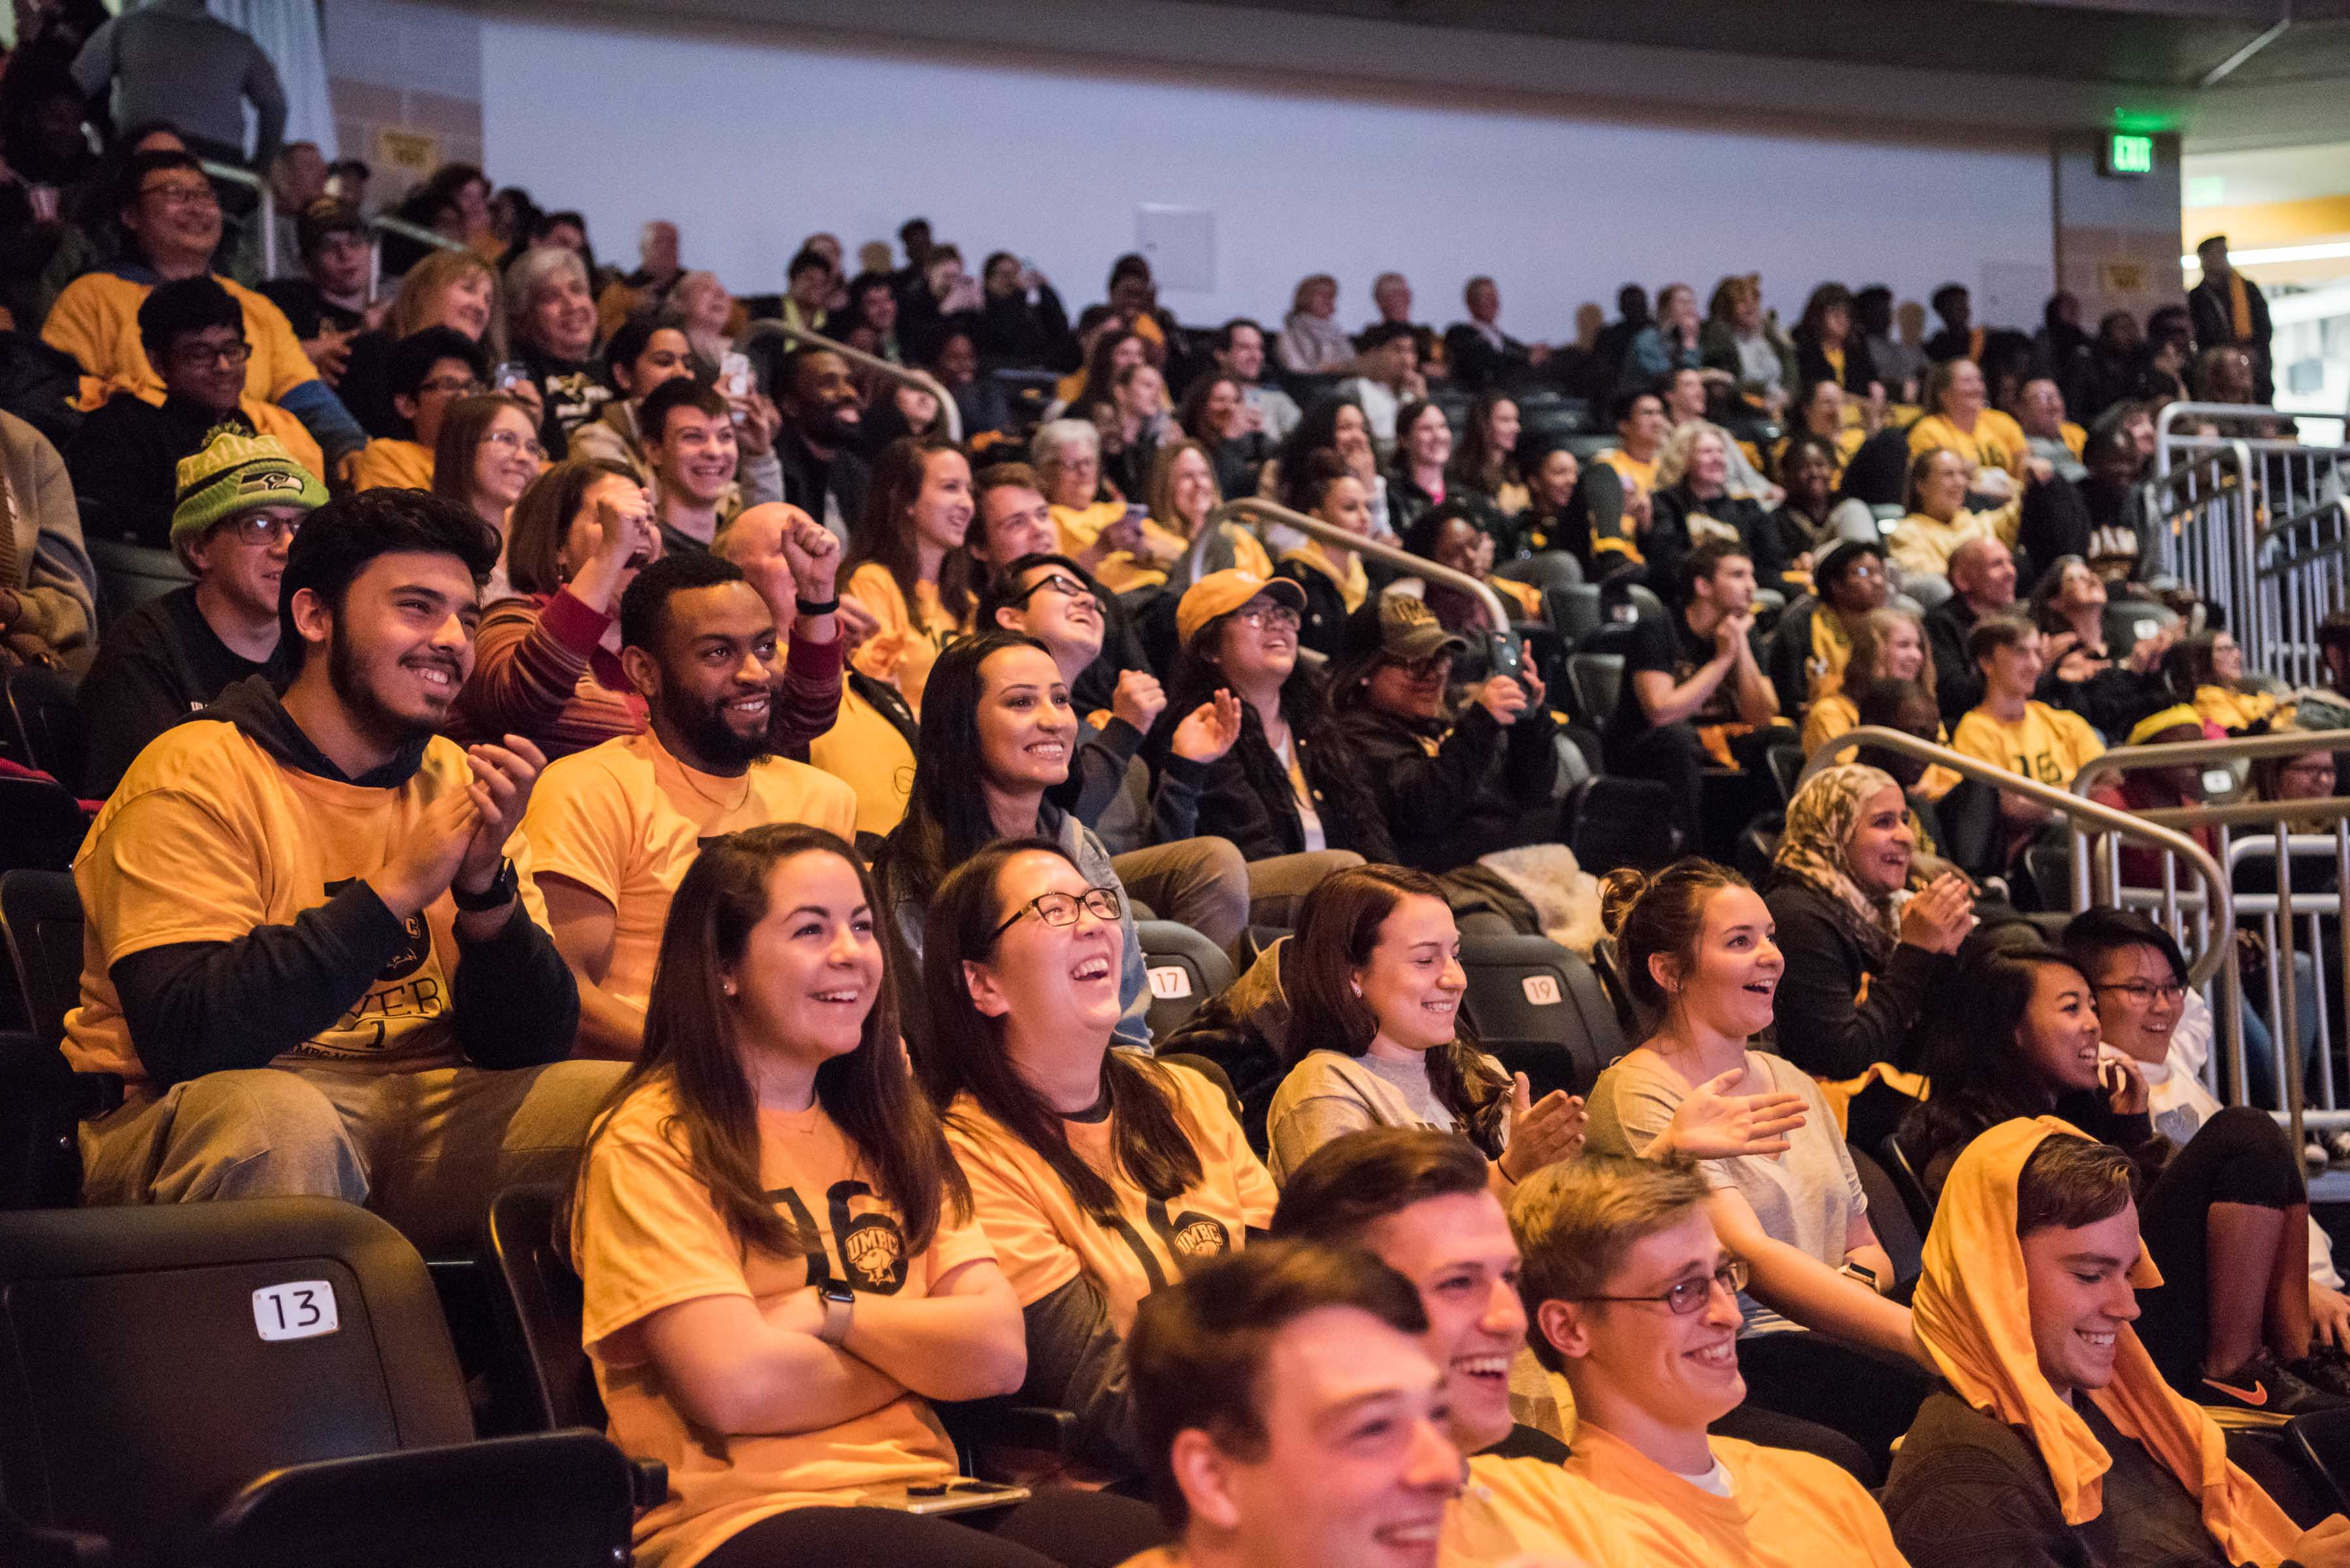 Crowd with UMBC shirts clap at Mens basketball celebration